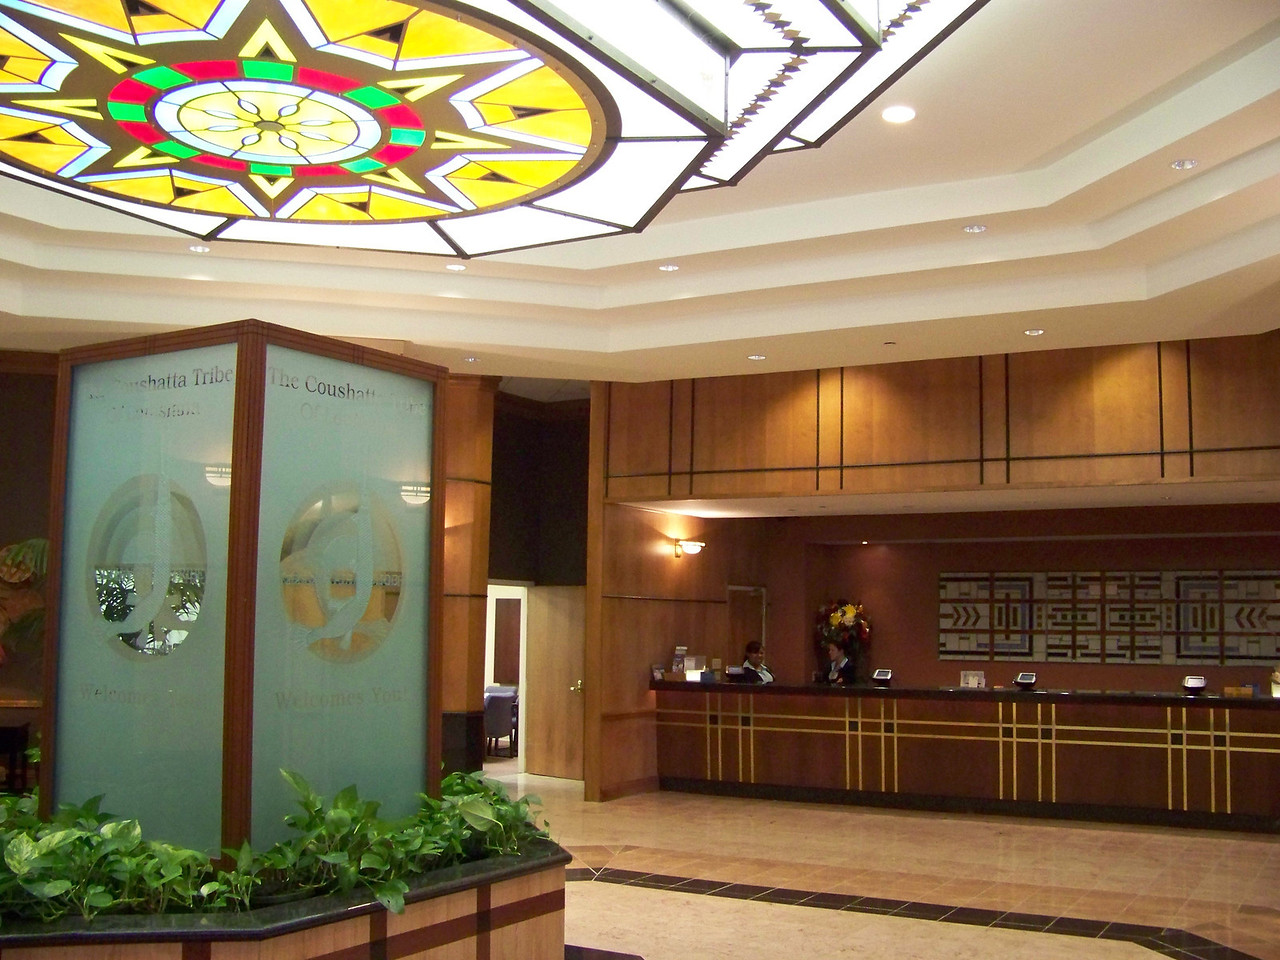 The lobby and hotel desk for the Grand Hotel at the Coushatta Casino Resort.